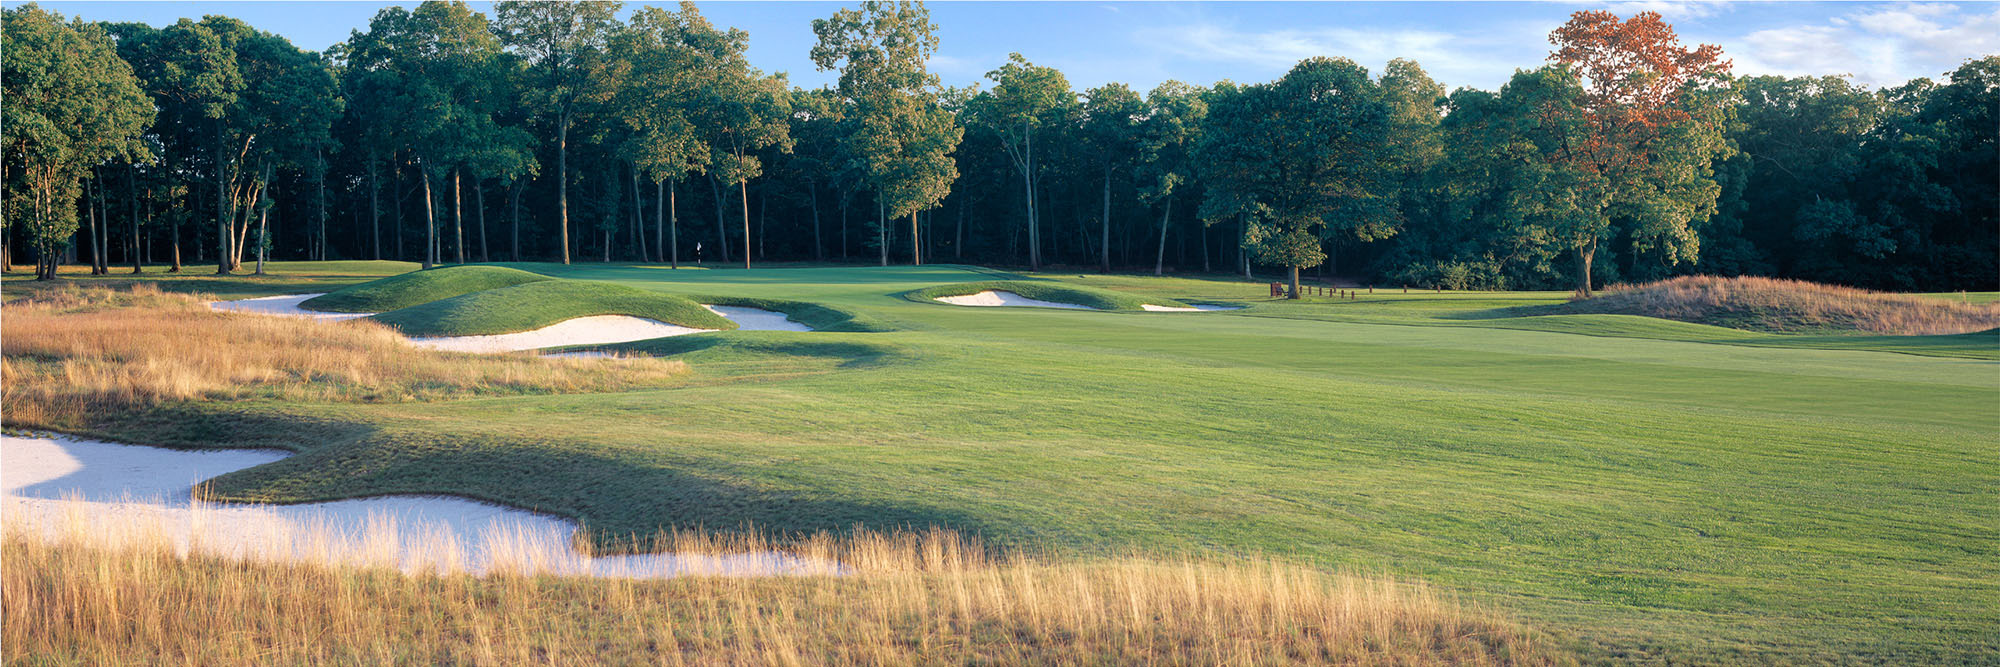 Golf Course Image - Bethpage No. 11